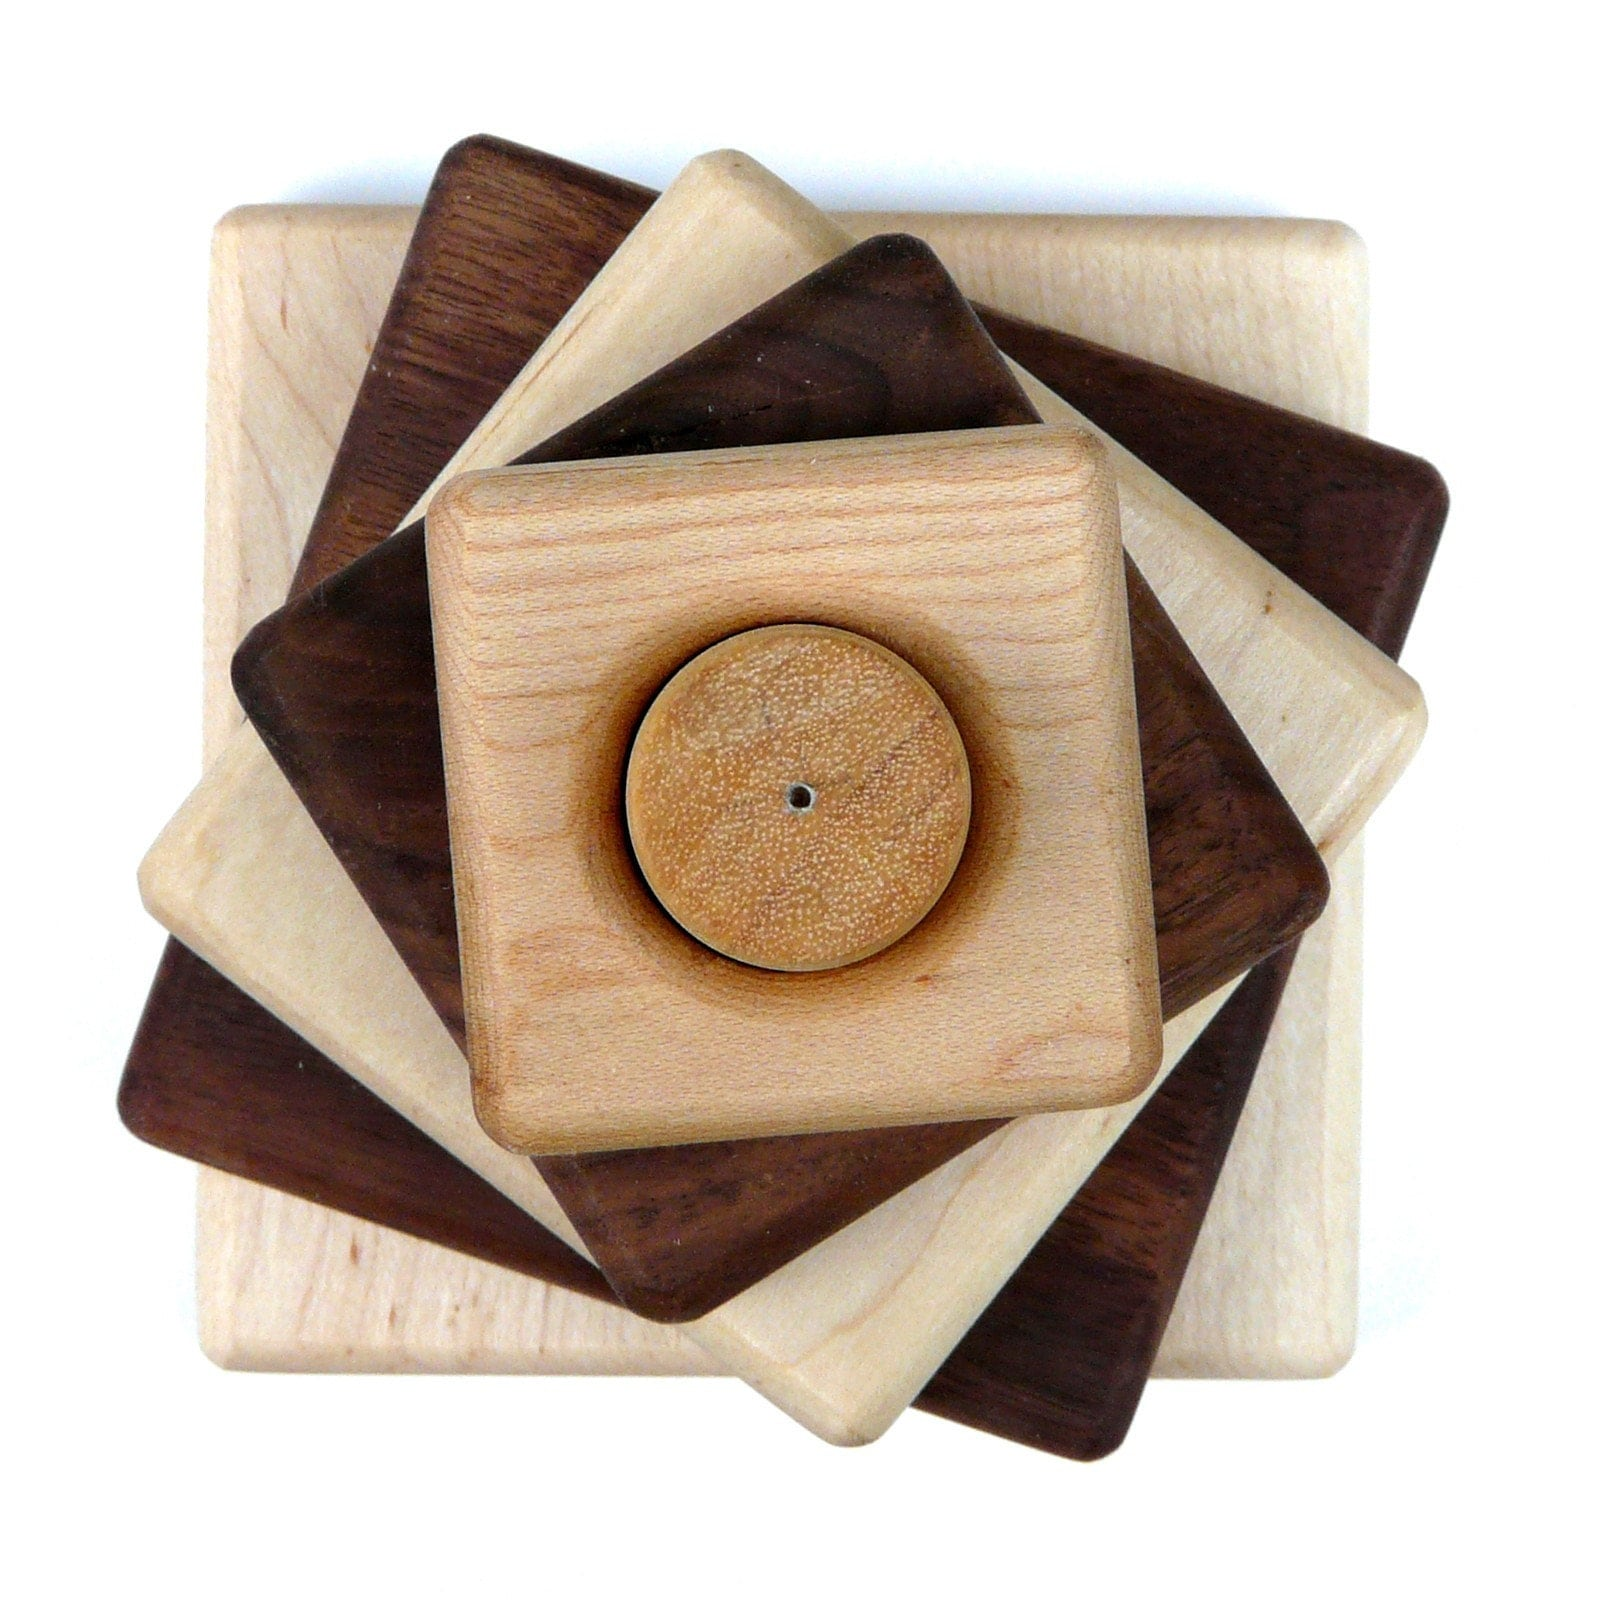 Maple/Walnut wood stacking toy